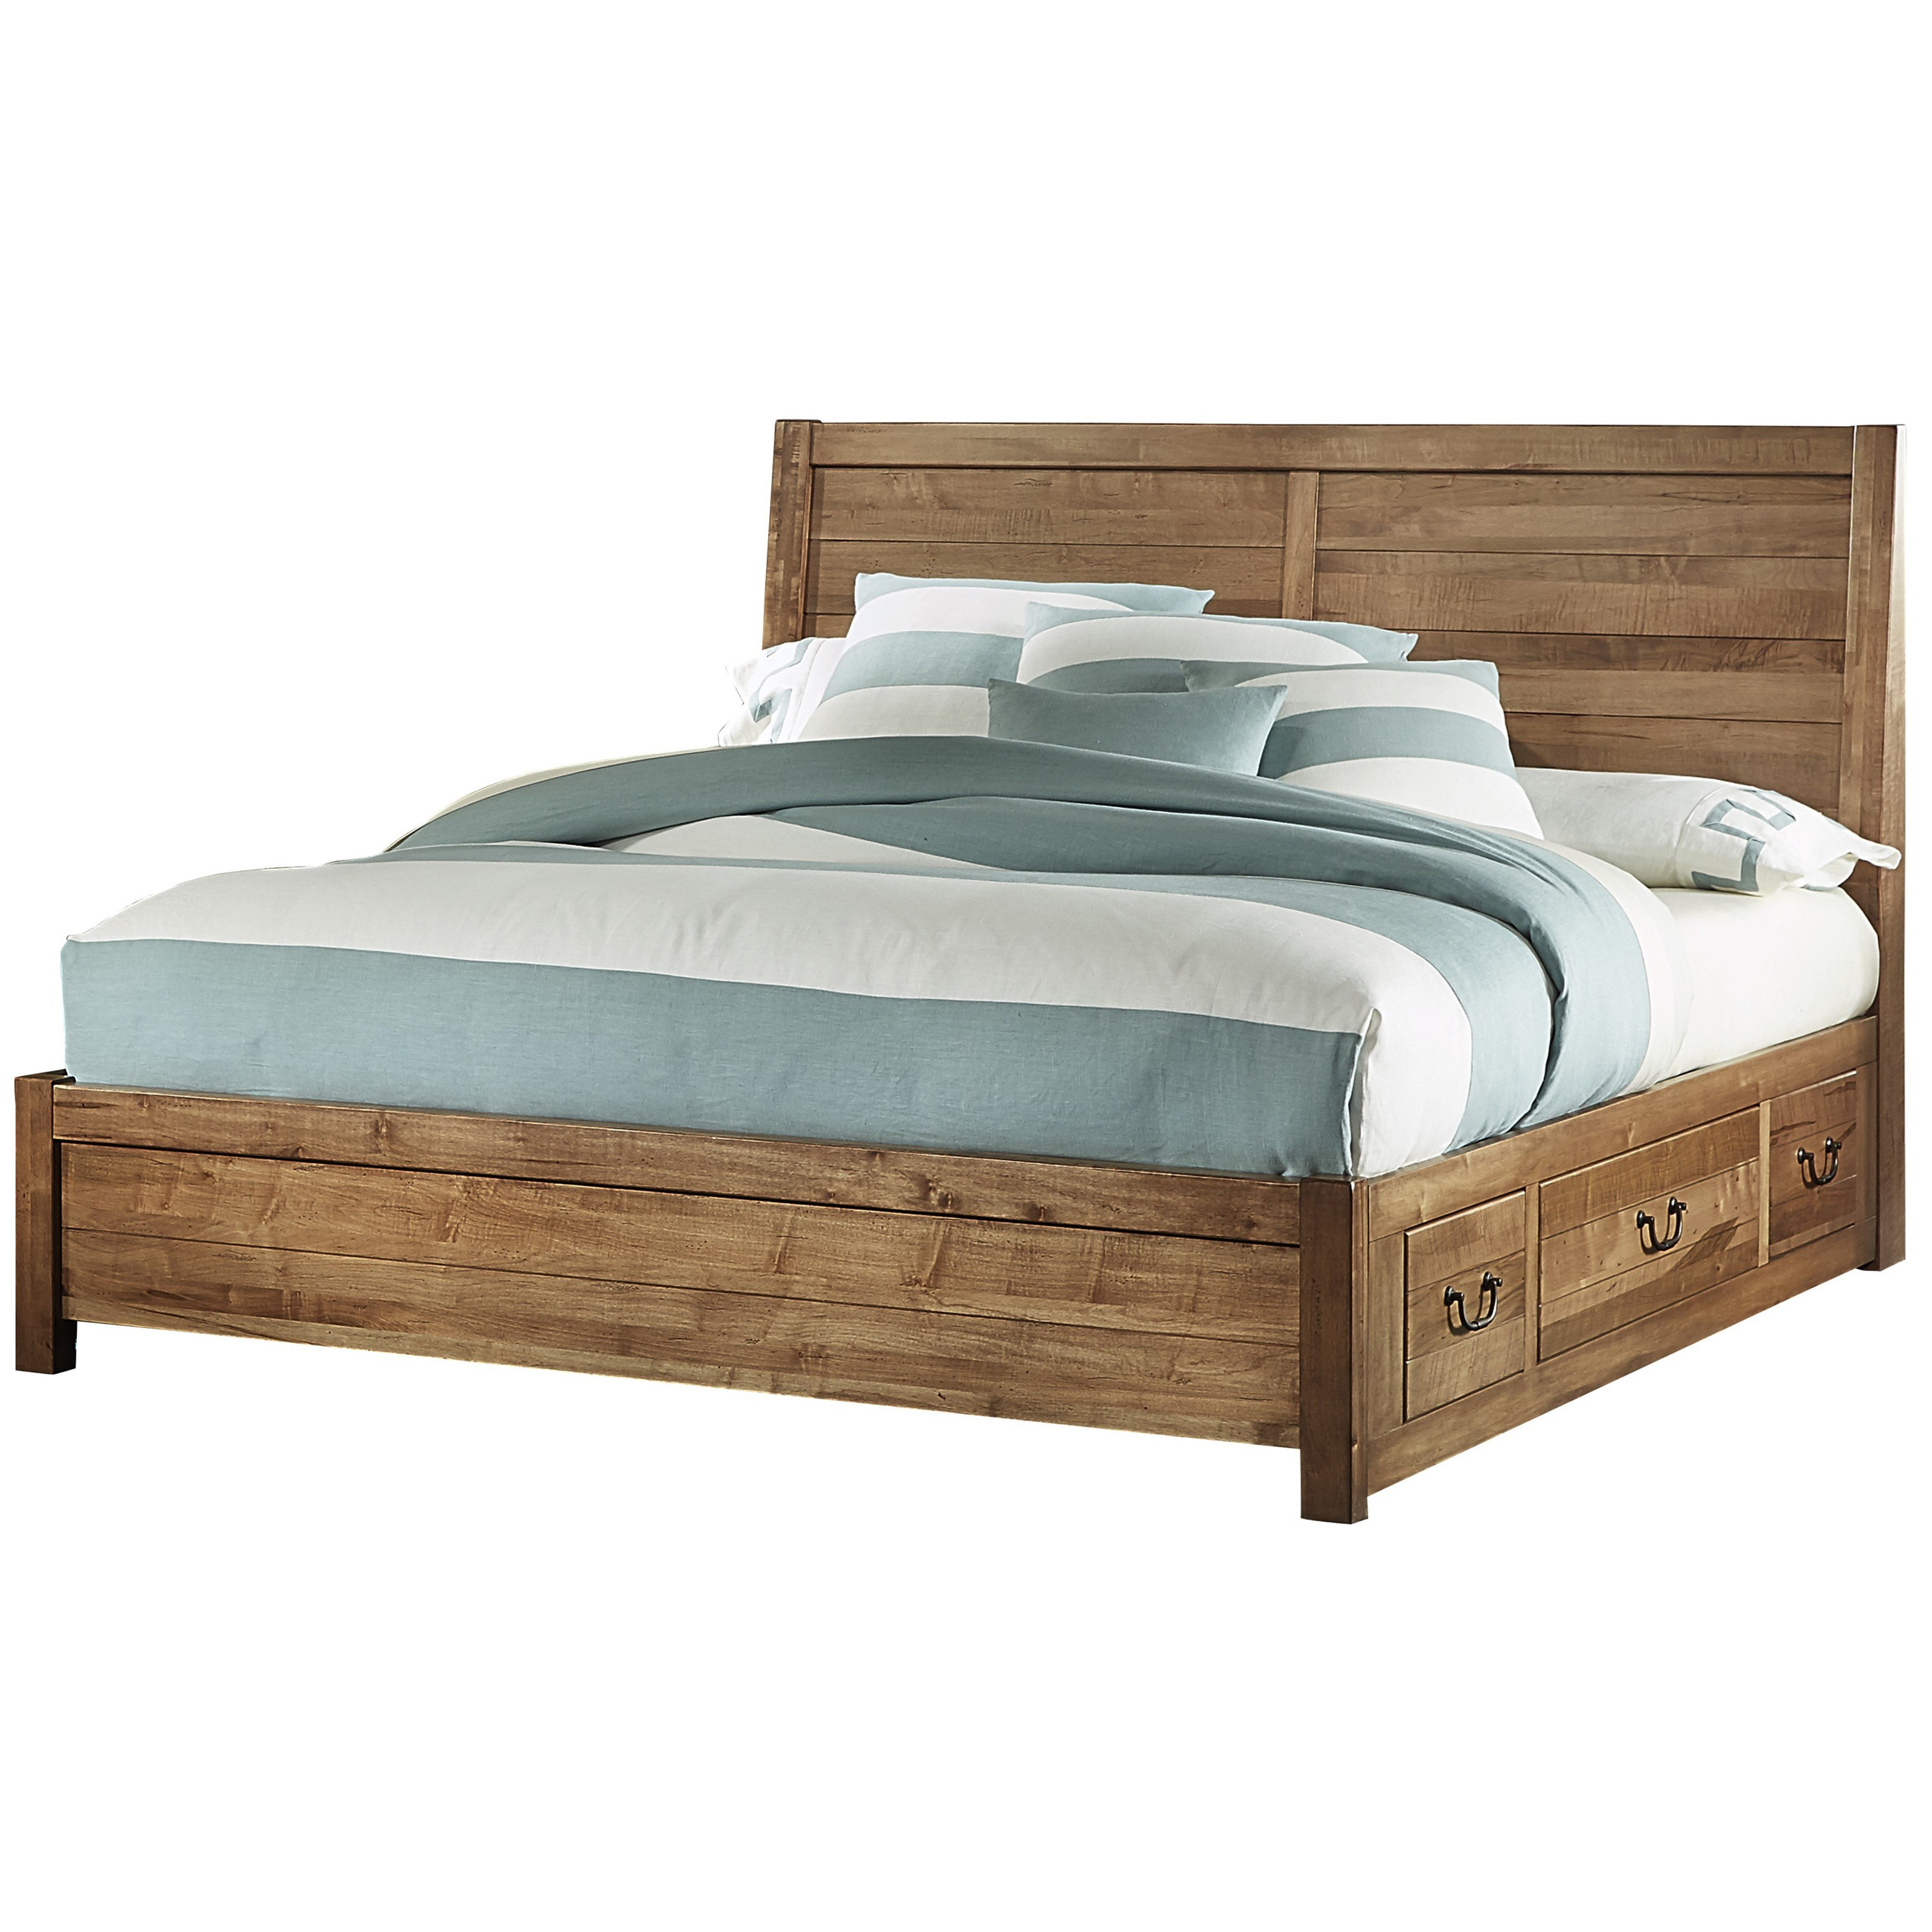 Sedgwick Queen Panel 3 Drawer Storage Bed by Artisan & Post at Zak's Home